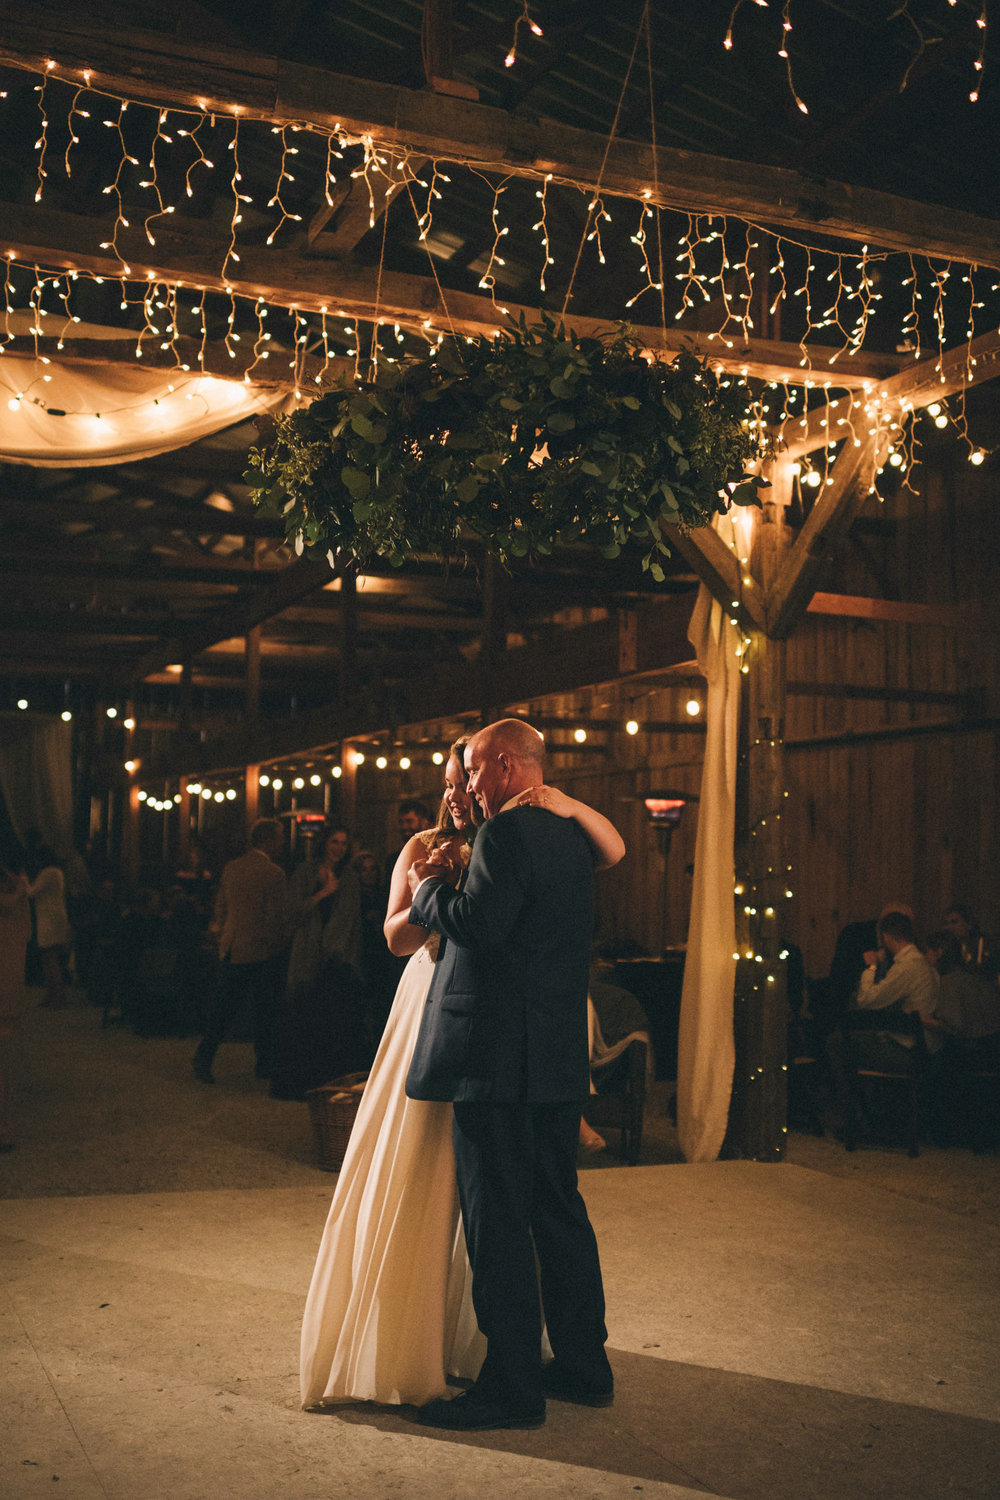 Maggie-Corey-Fall-Wedding-Barn-At-Twin-Lakes-Louisville-By-Kentucky-Wedding-Elopement-Photographer-Sarah-Katherine-Davis-Photography-768edit.jpg